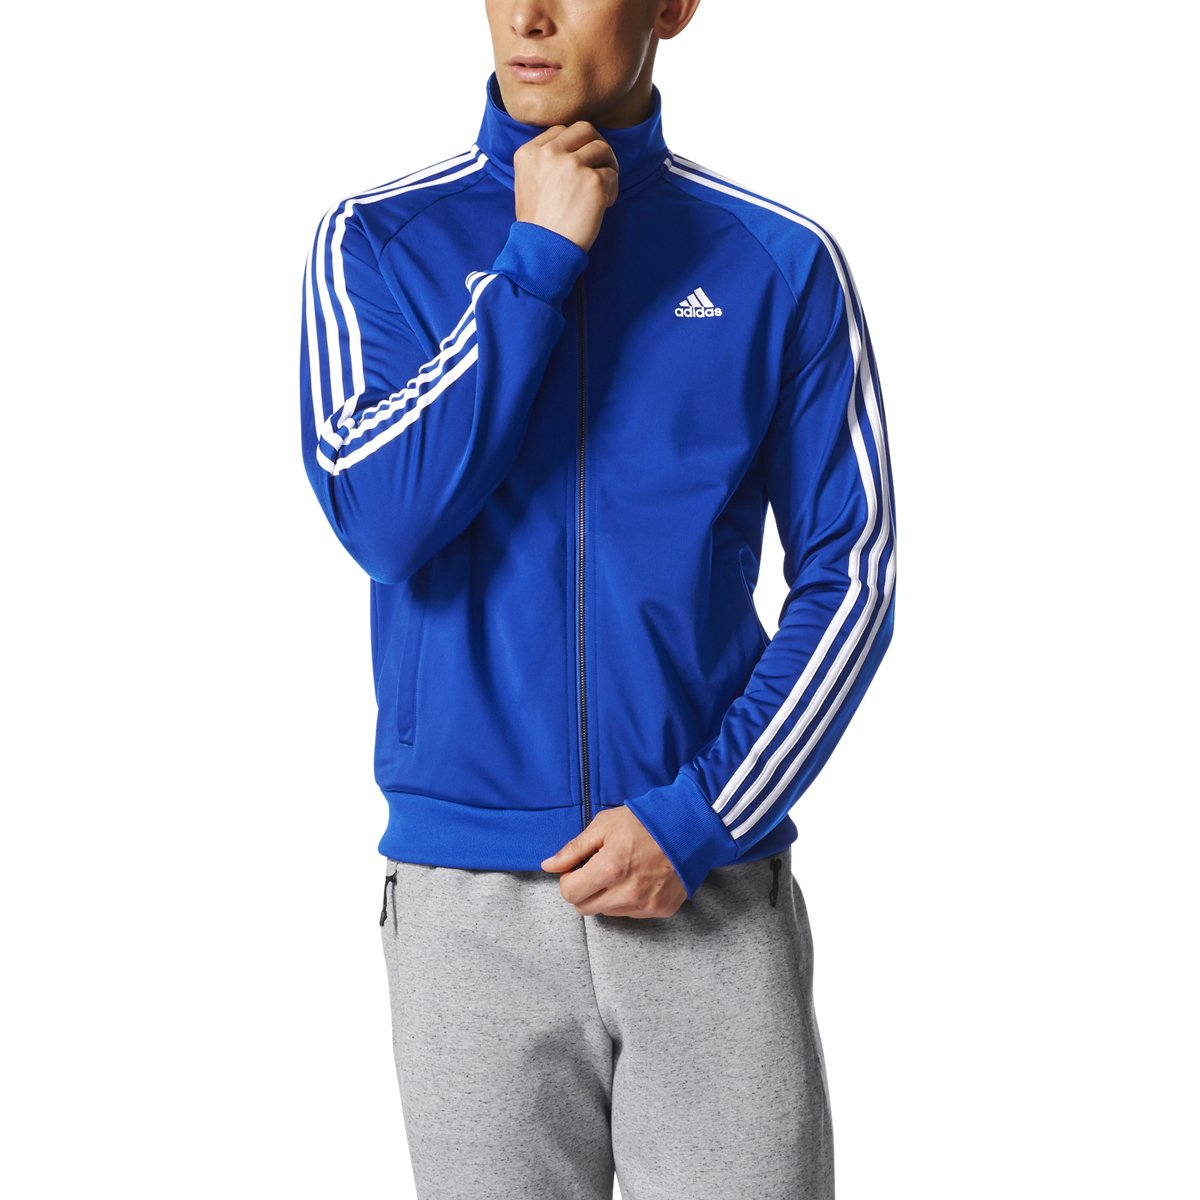 adidas Essentials 3S Tricot Track Jacket Men's All Sports S Collegiate Royal-White